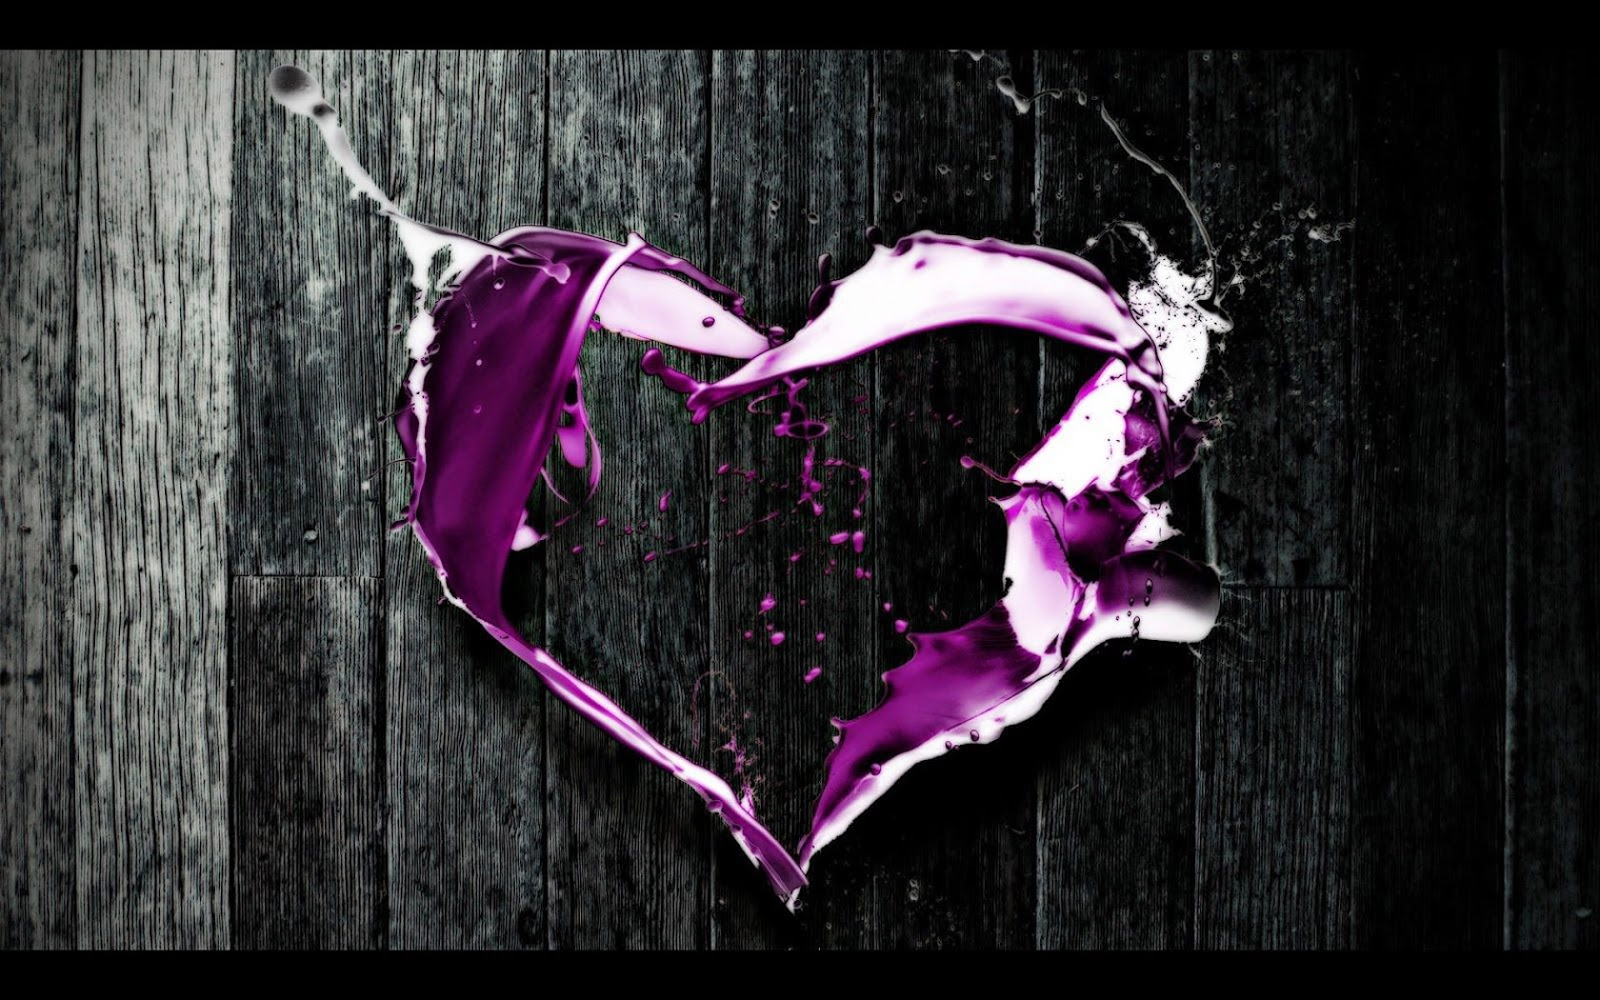 purple heart with black shaded background